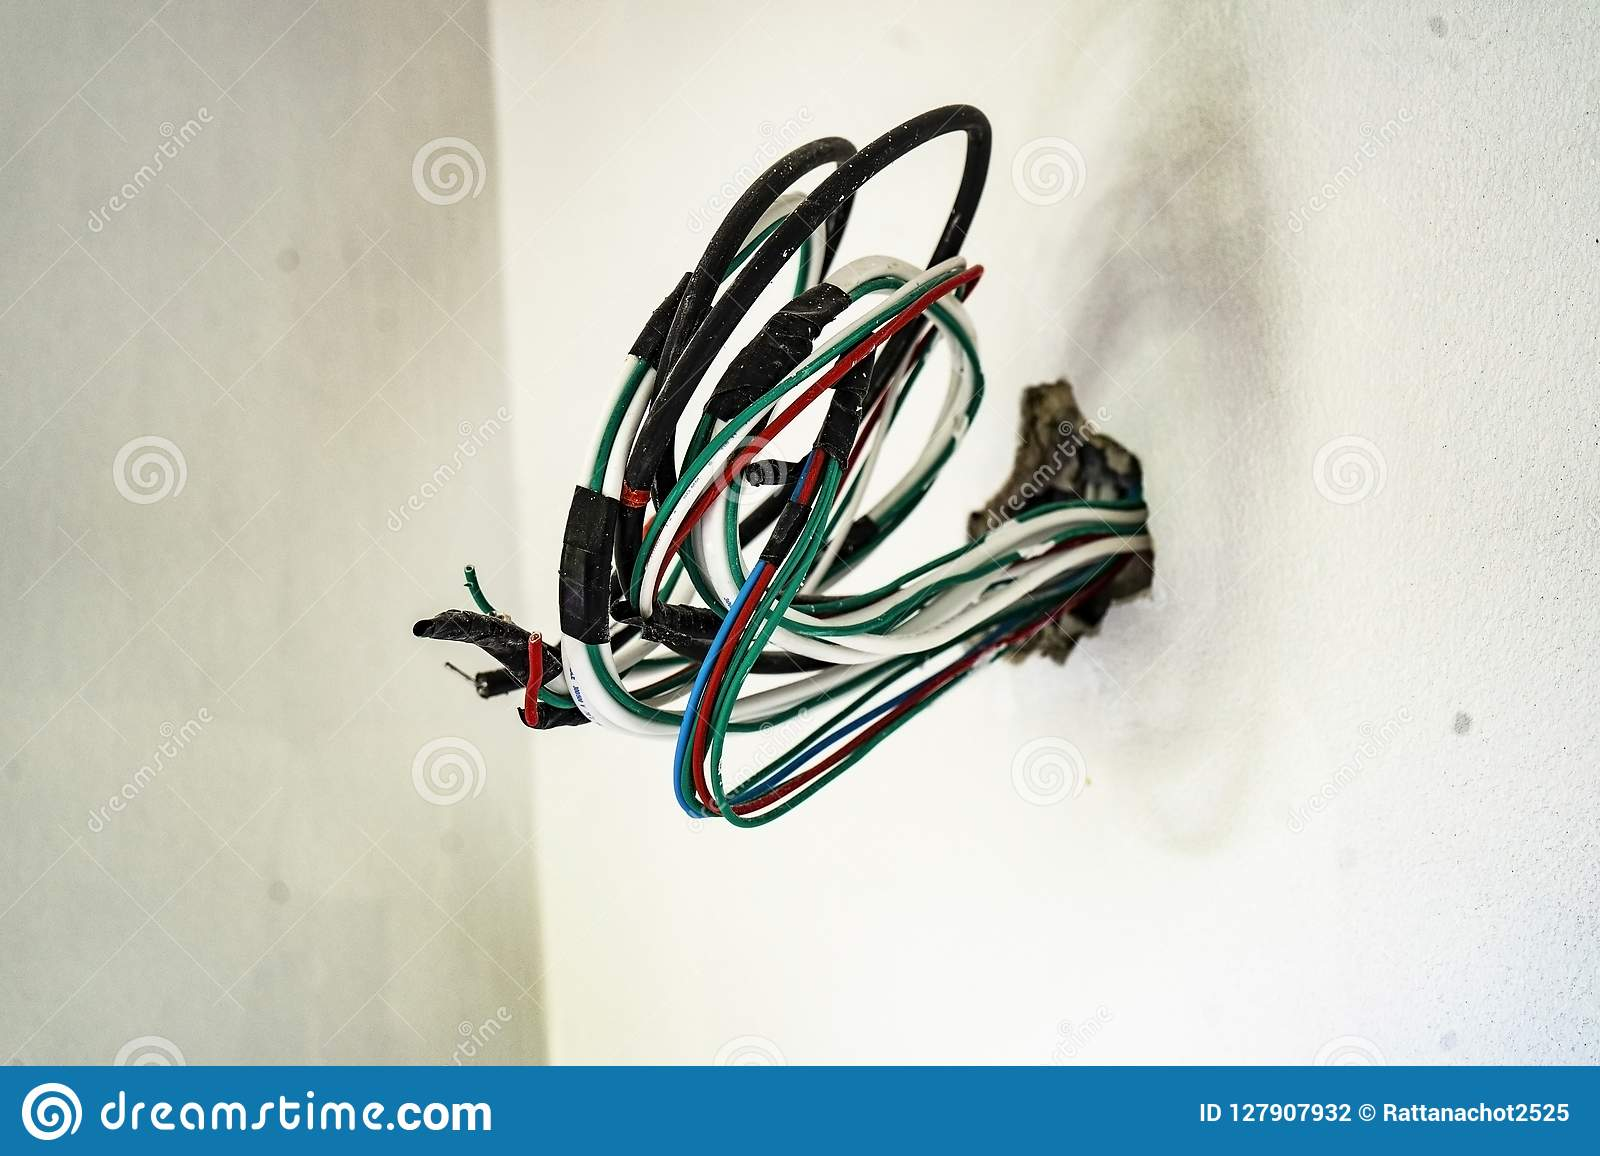 hight resolution of electrical wiring in the house wall